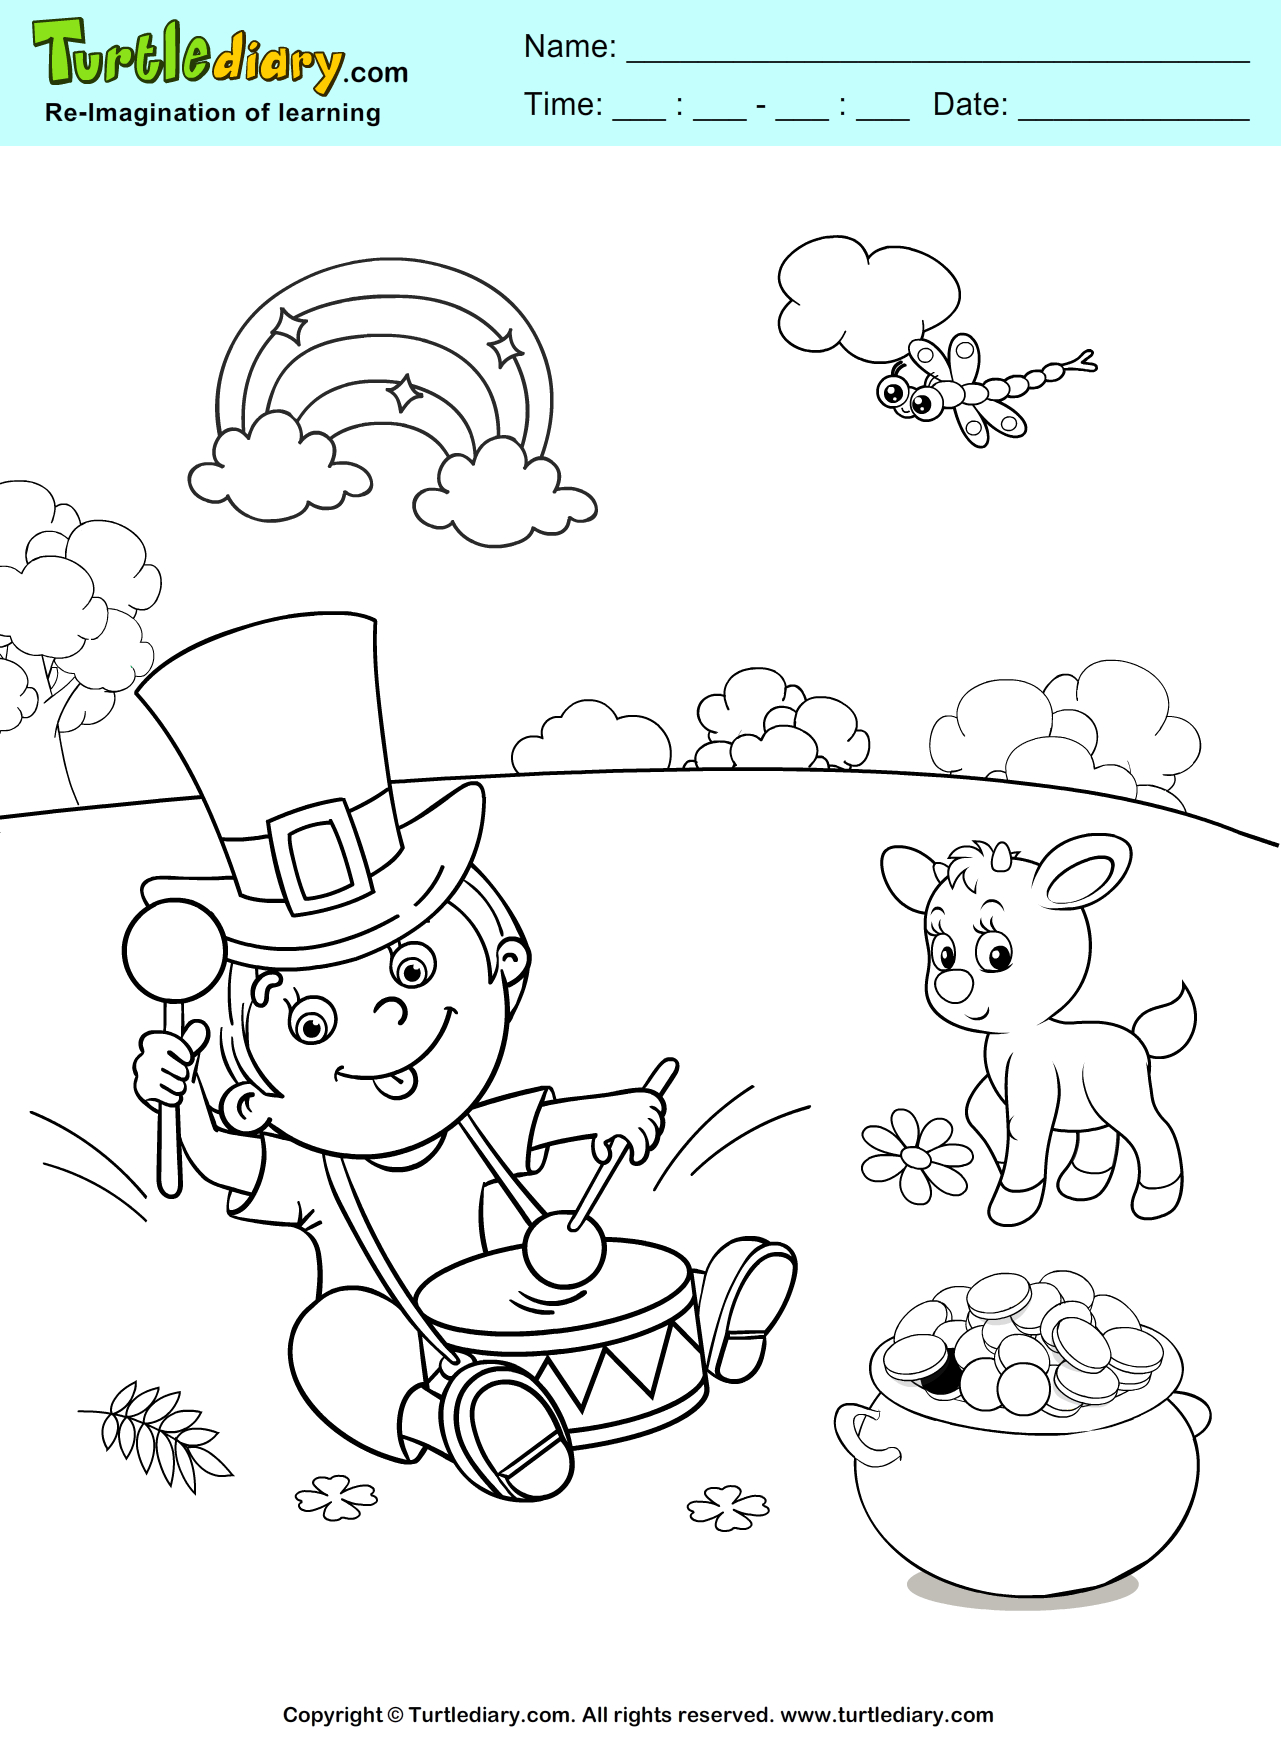 Coloring Pages : Free Printablenbow Coloring Sheet Blank With Regard To Blank Face Template Preschool